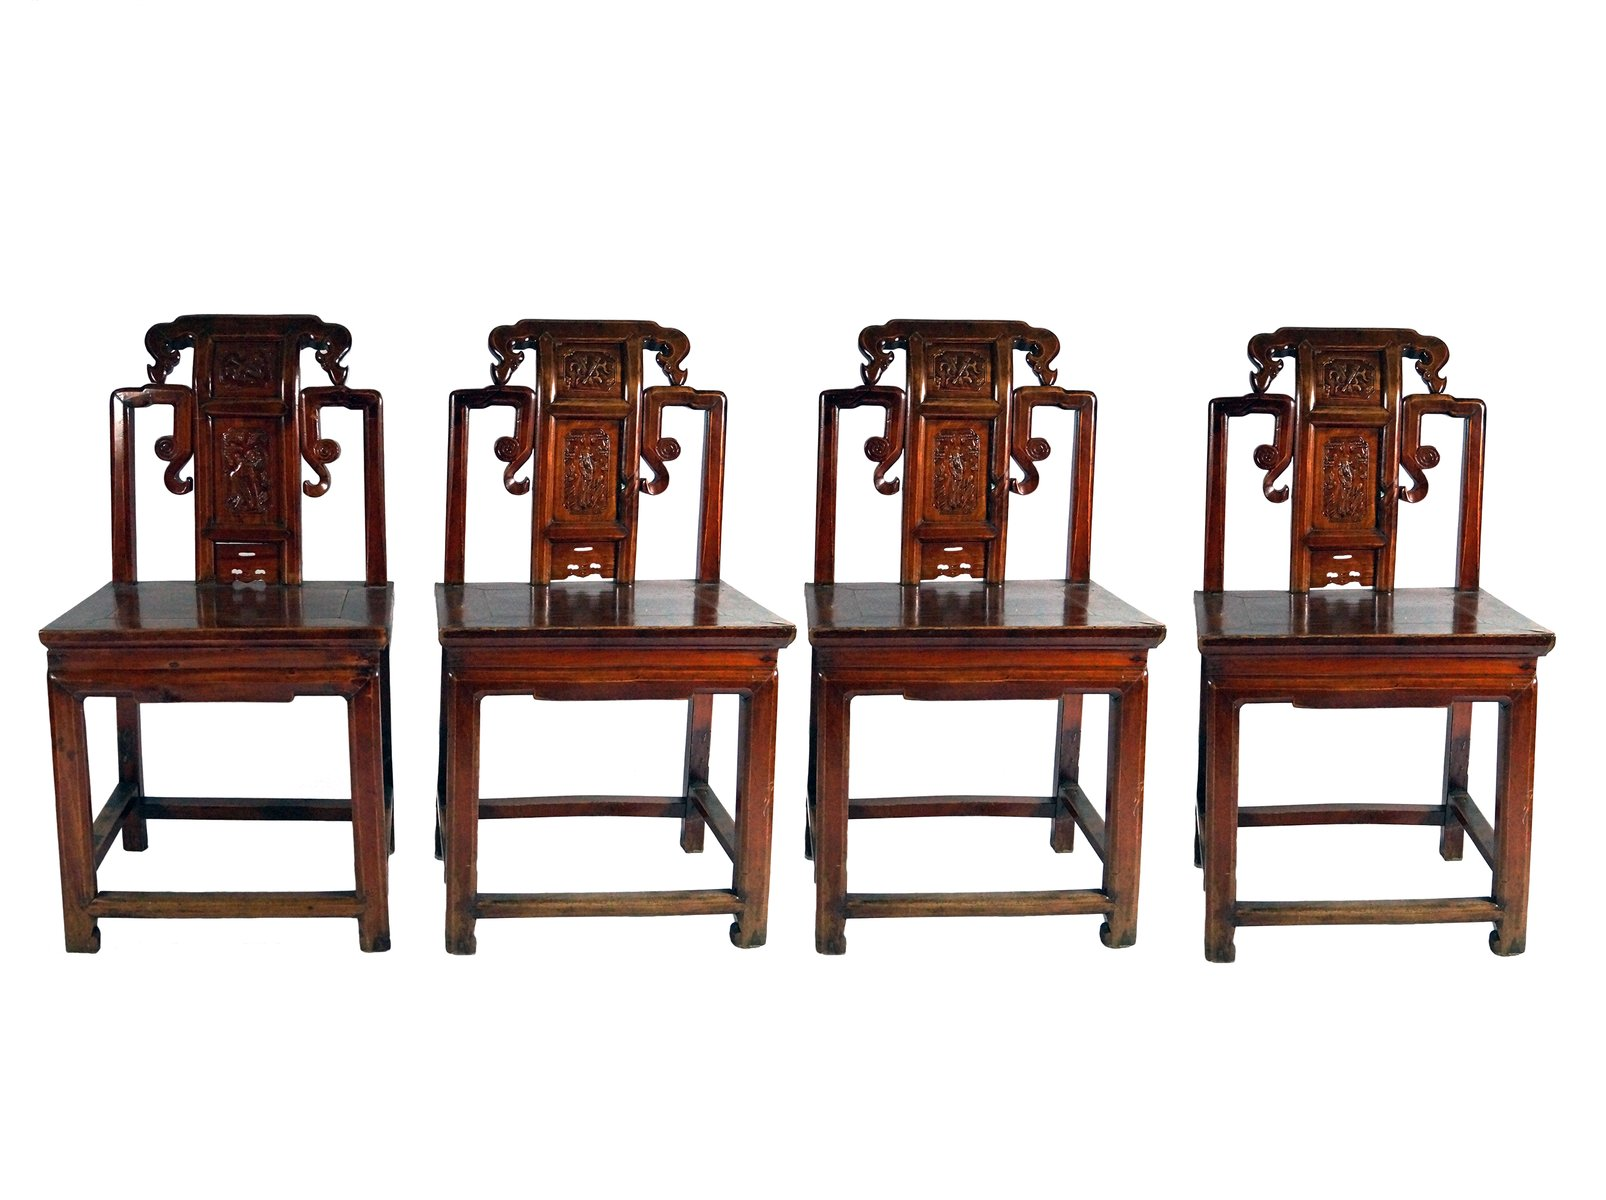 Antique red chinese carved wood chairs 1860s set of 4 for Asian chairs for sale